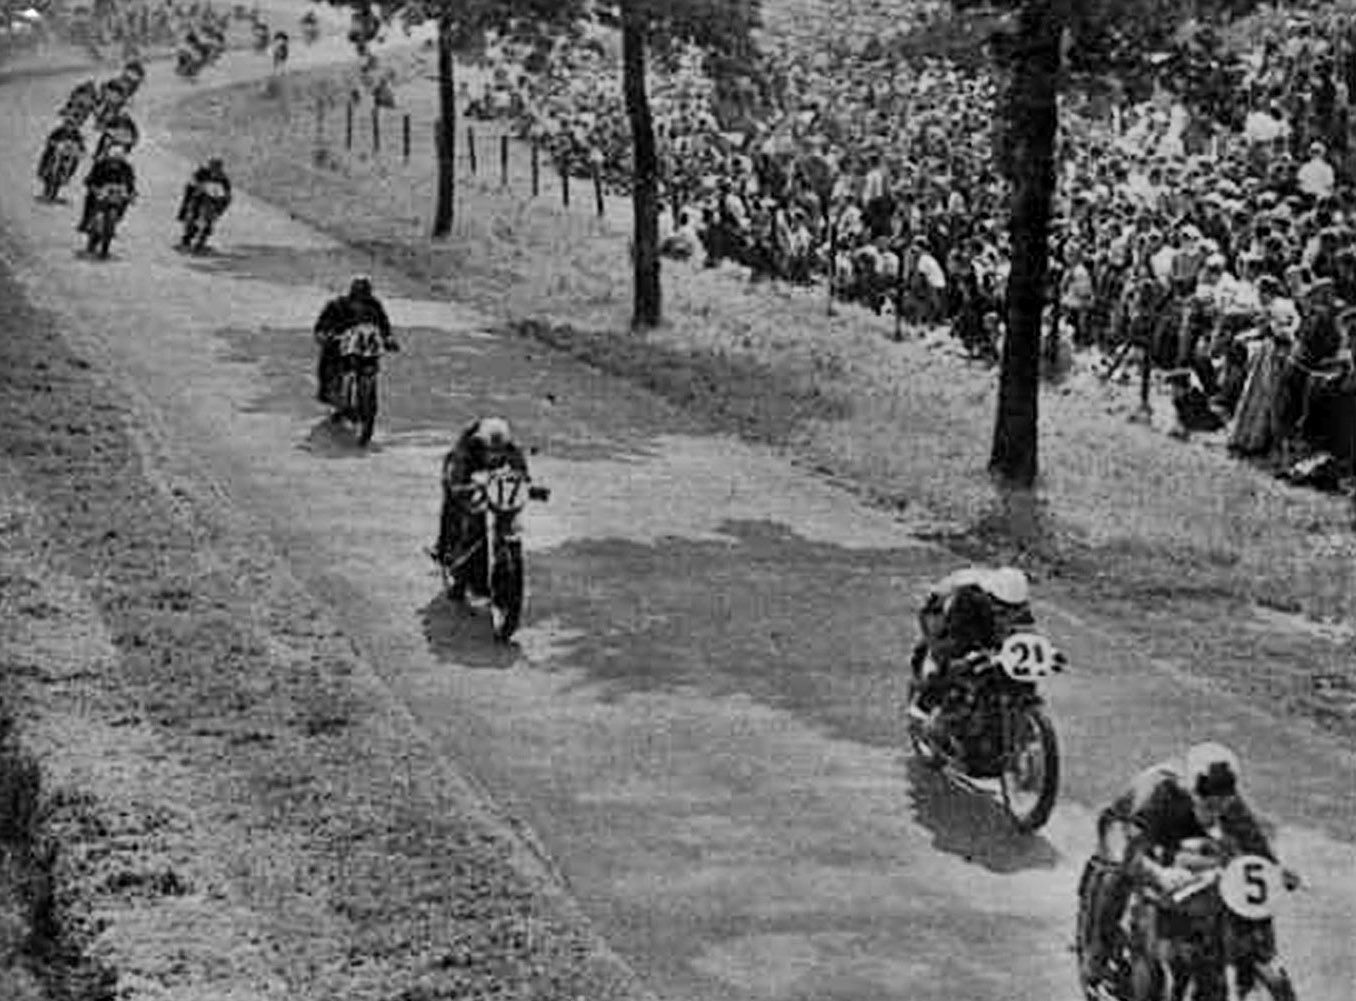 500cc Dutch TT at Assen ...I'm guessing this is from the 1930's